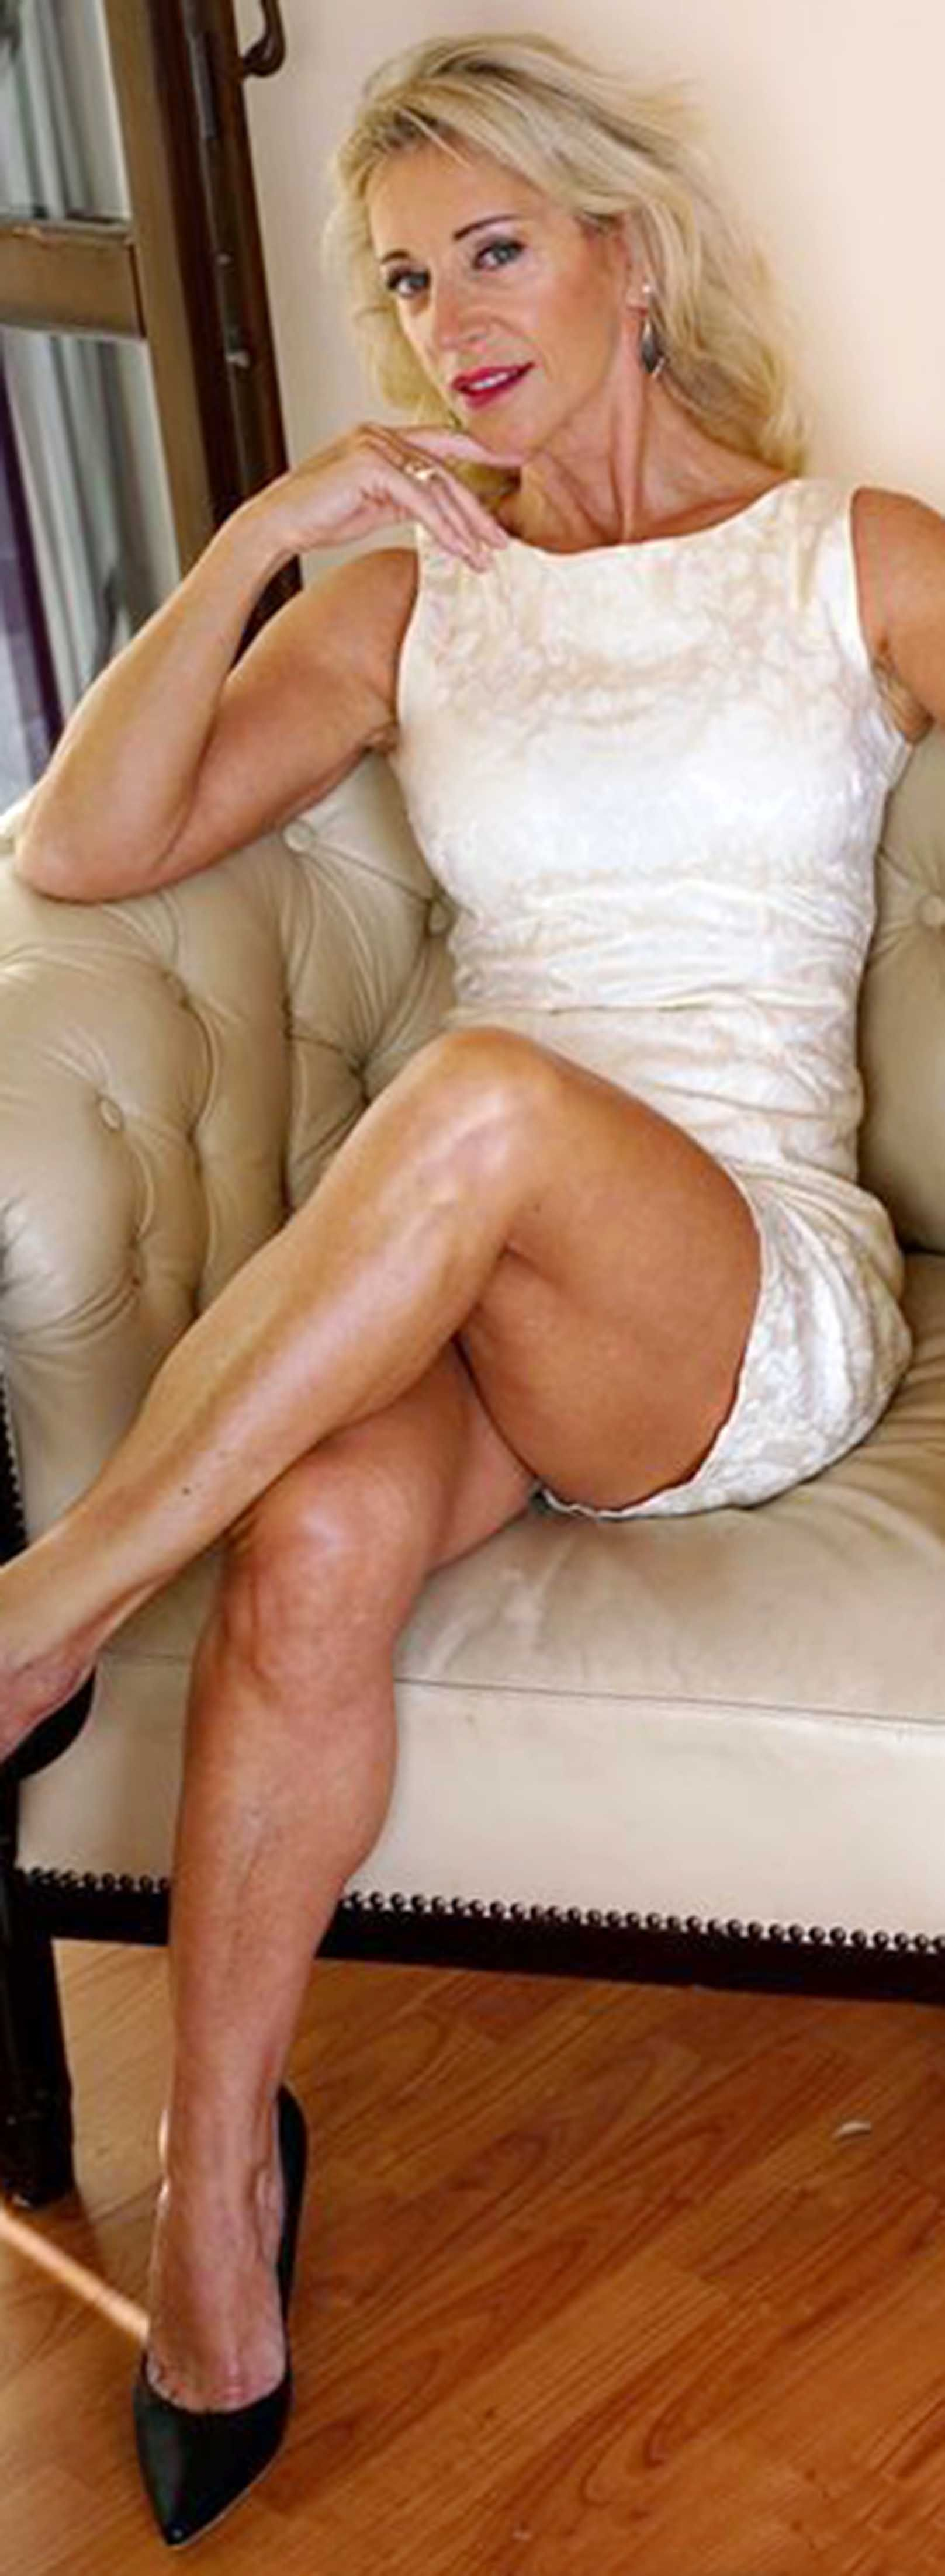 Mature Women With Great Legs